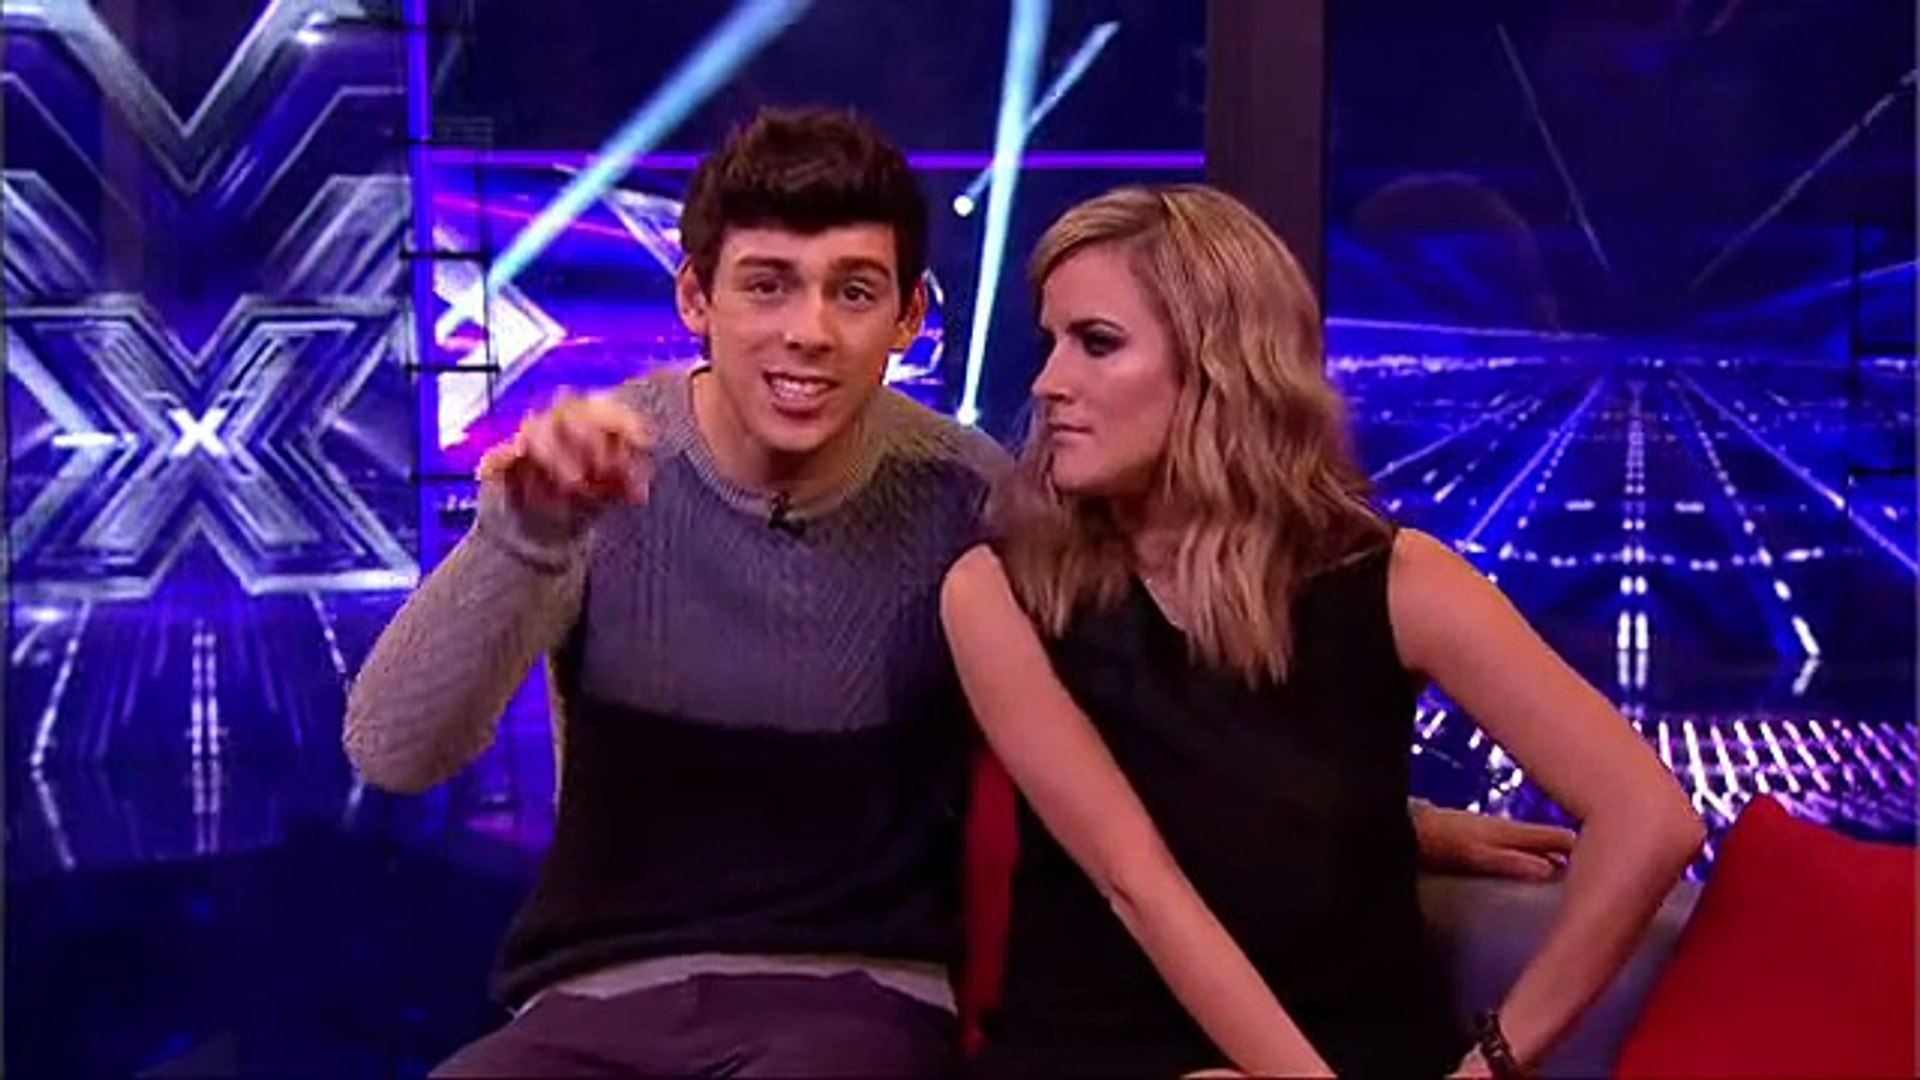 Louis Walsh reveals far too much to Matt - Live Week 7 - The Xtra Factor 2013 - Official Channel